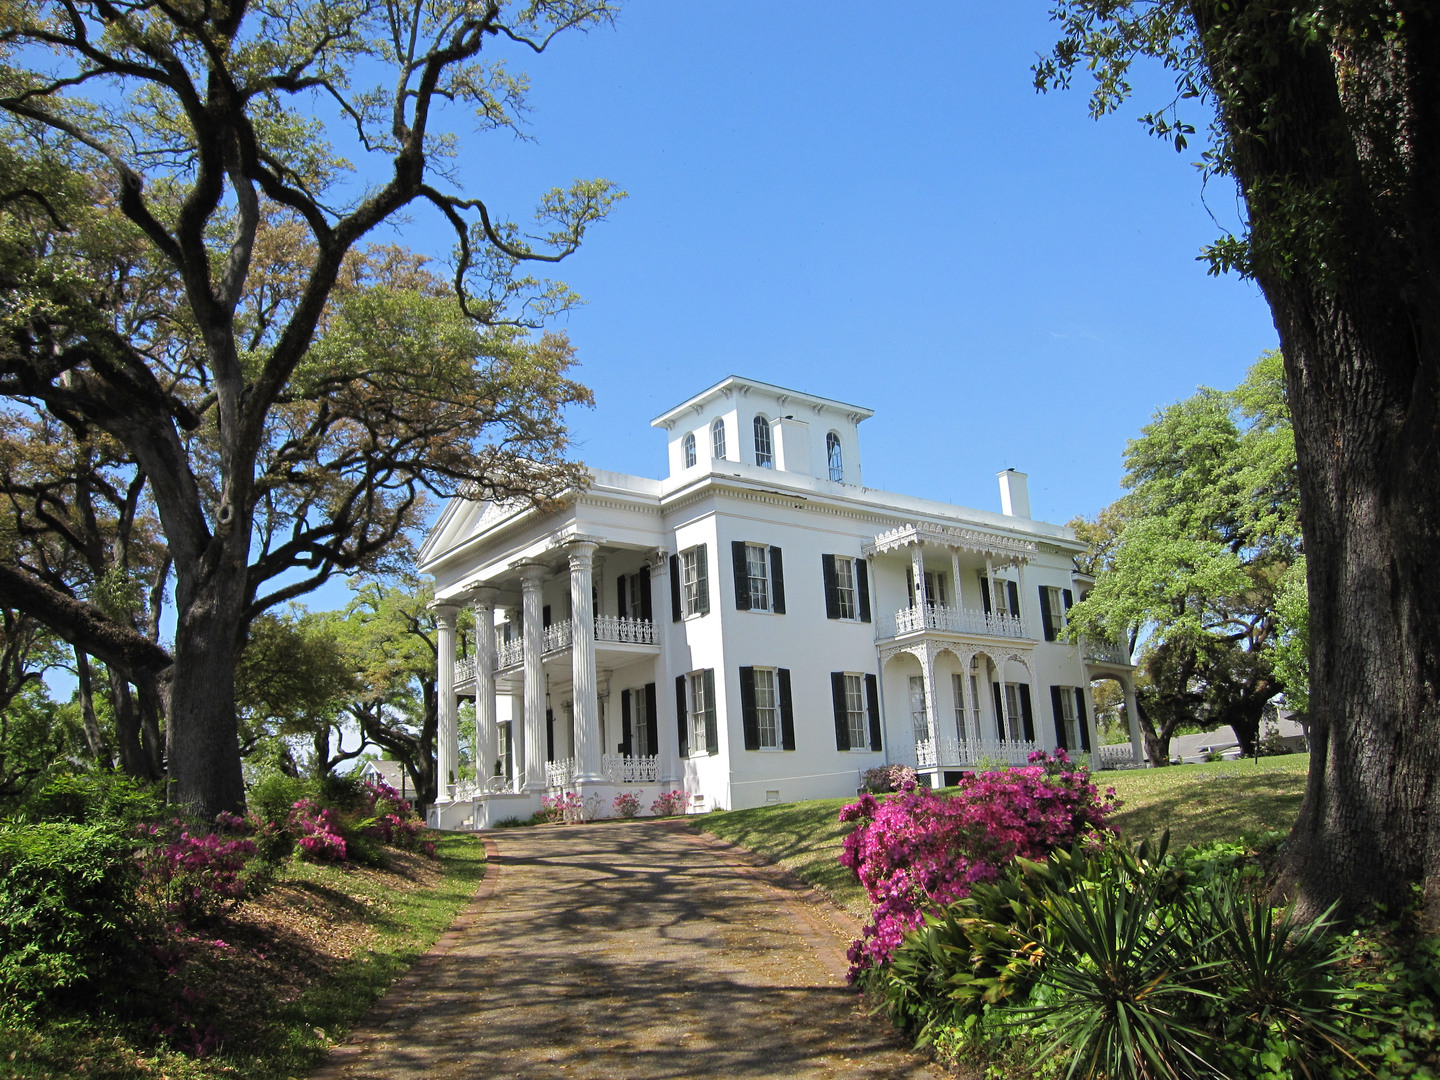 Stanton Hall Plantation Home in Natchez, Mississippi